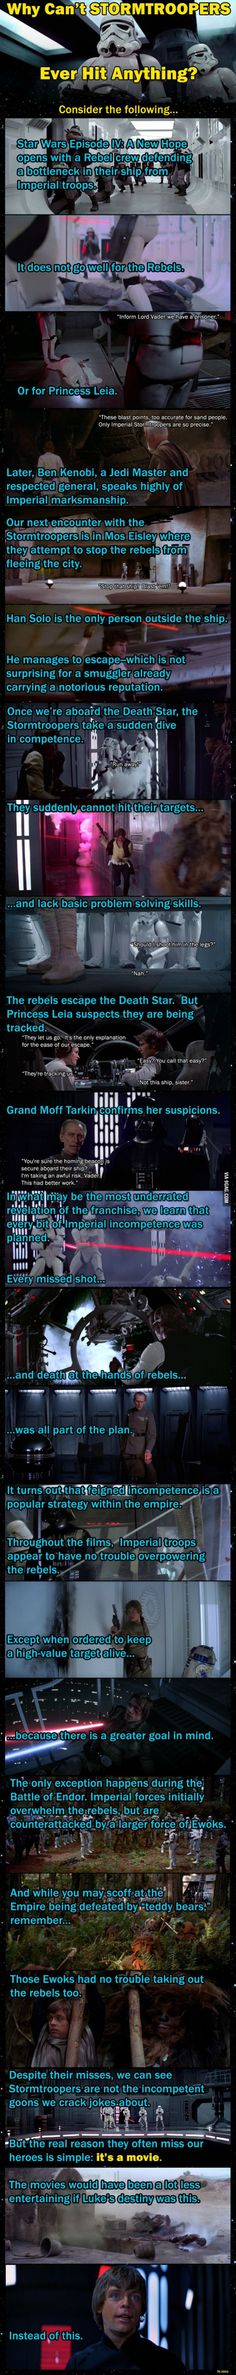 Why Storm troopers miss so much.